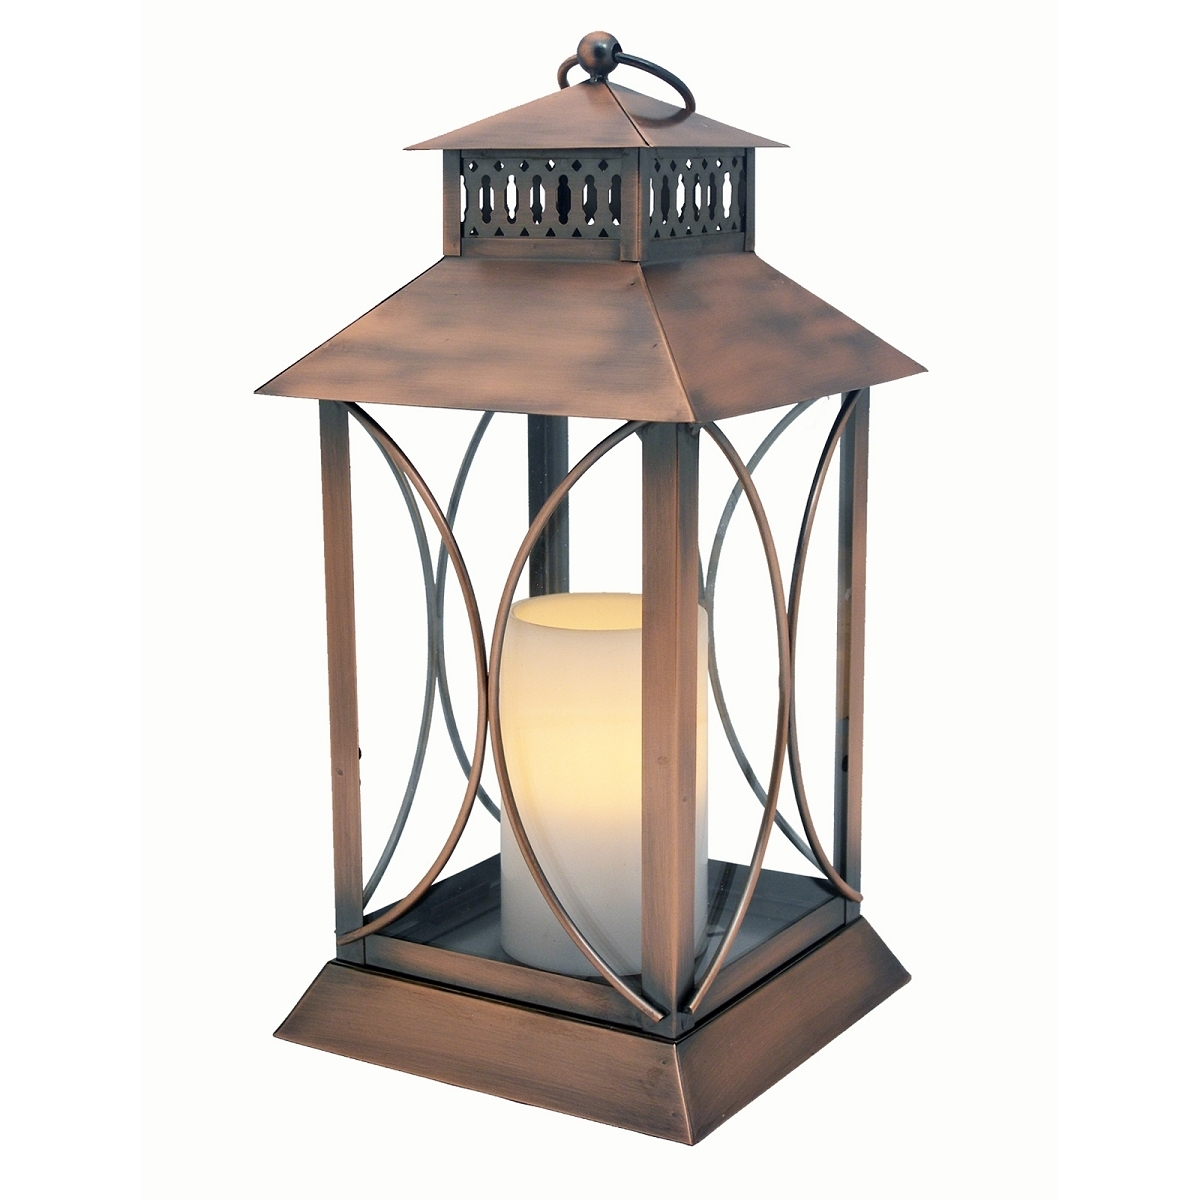 Neuporte Flameless Candle Lantern With Timer Indoor Outdoor inside Outdoor Lanterns With Timers (Image 12 of 20)